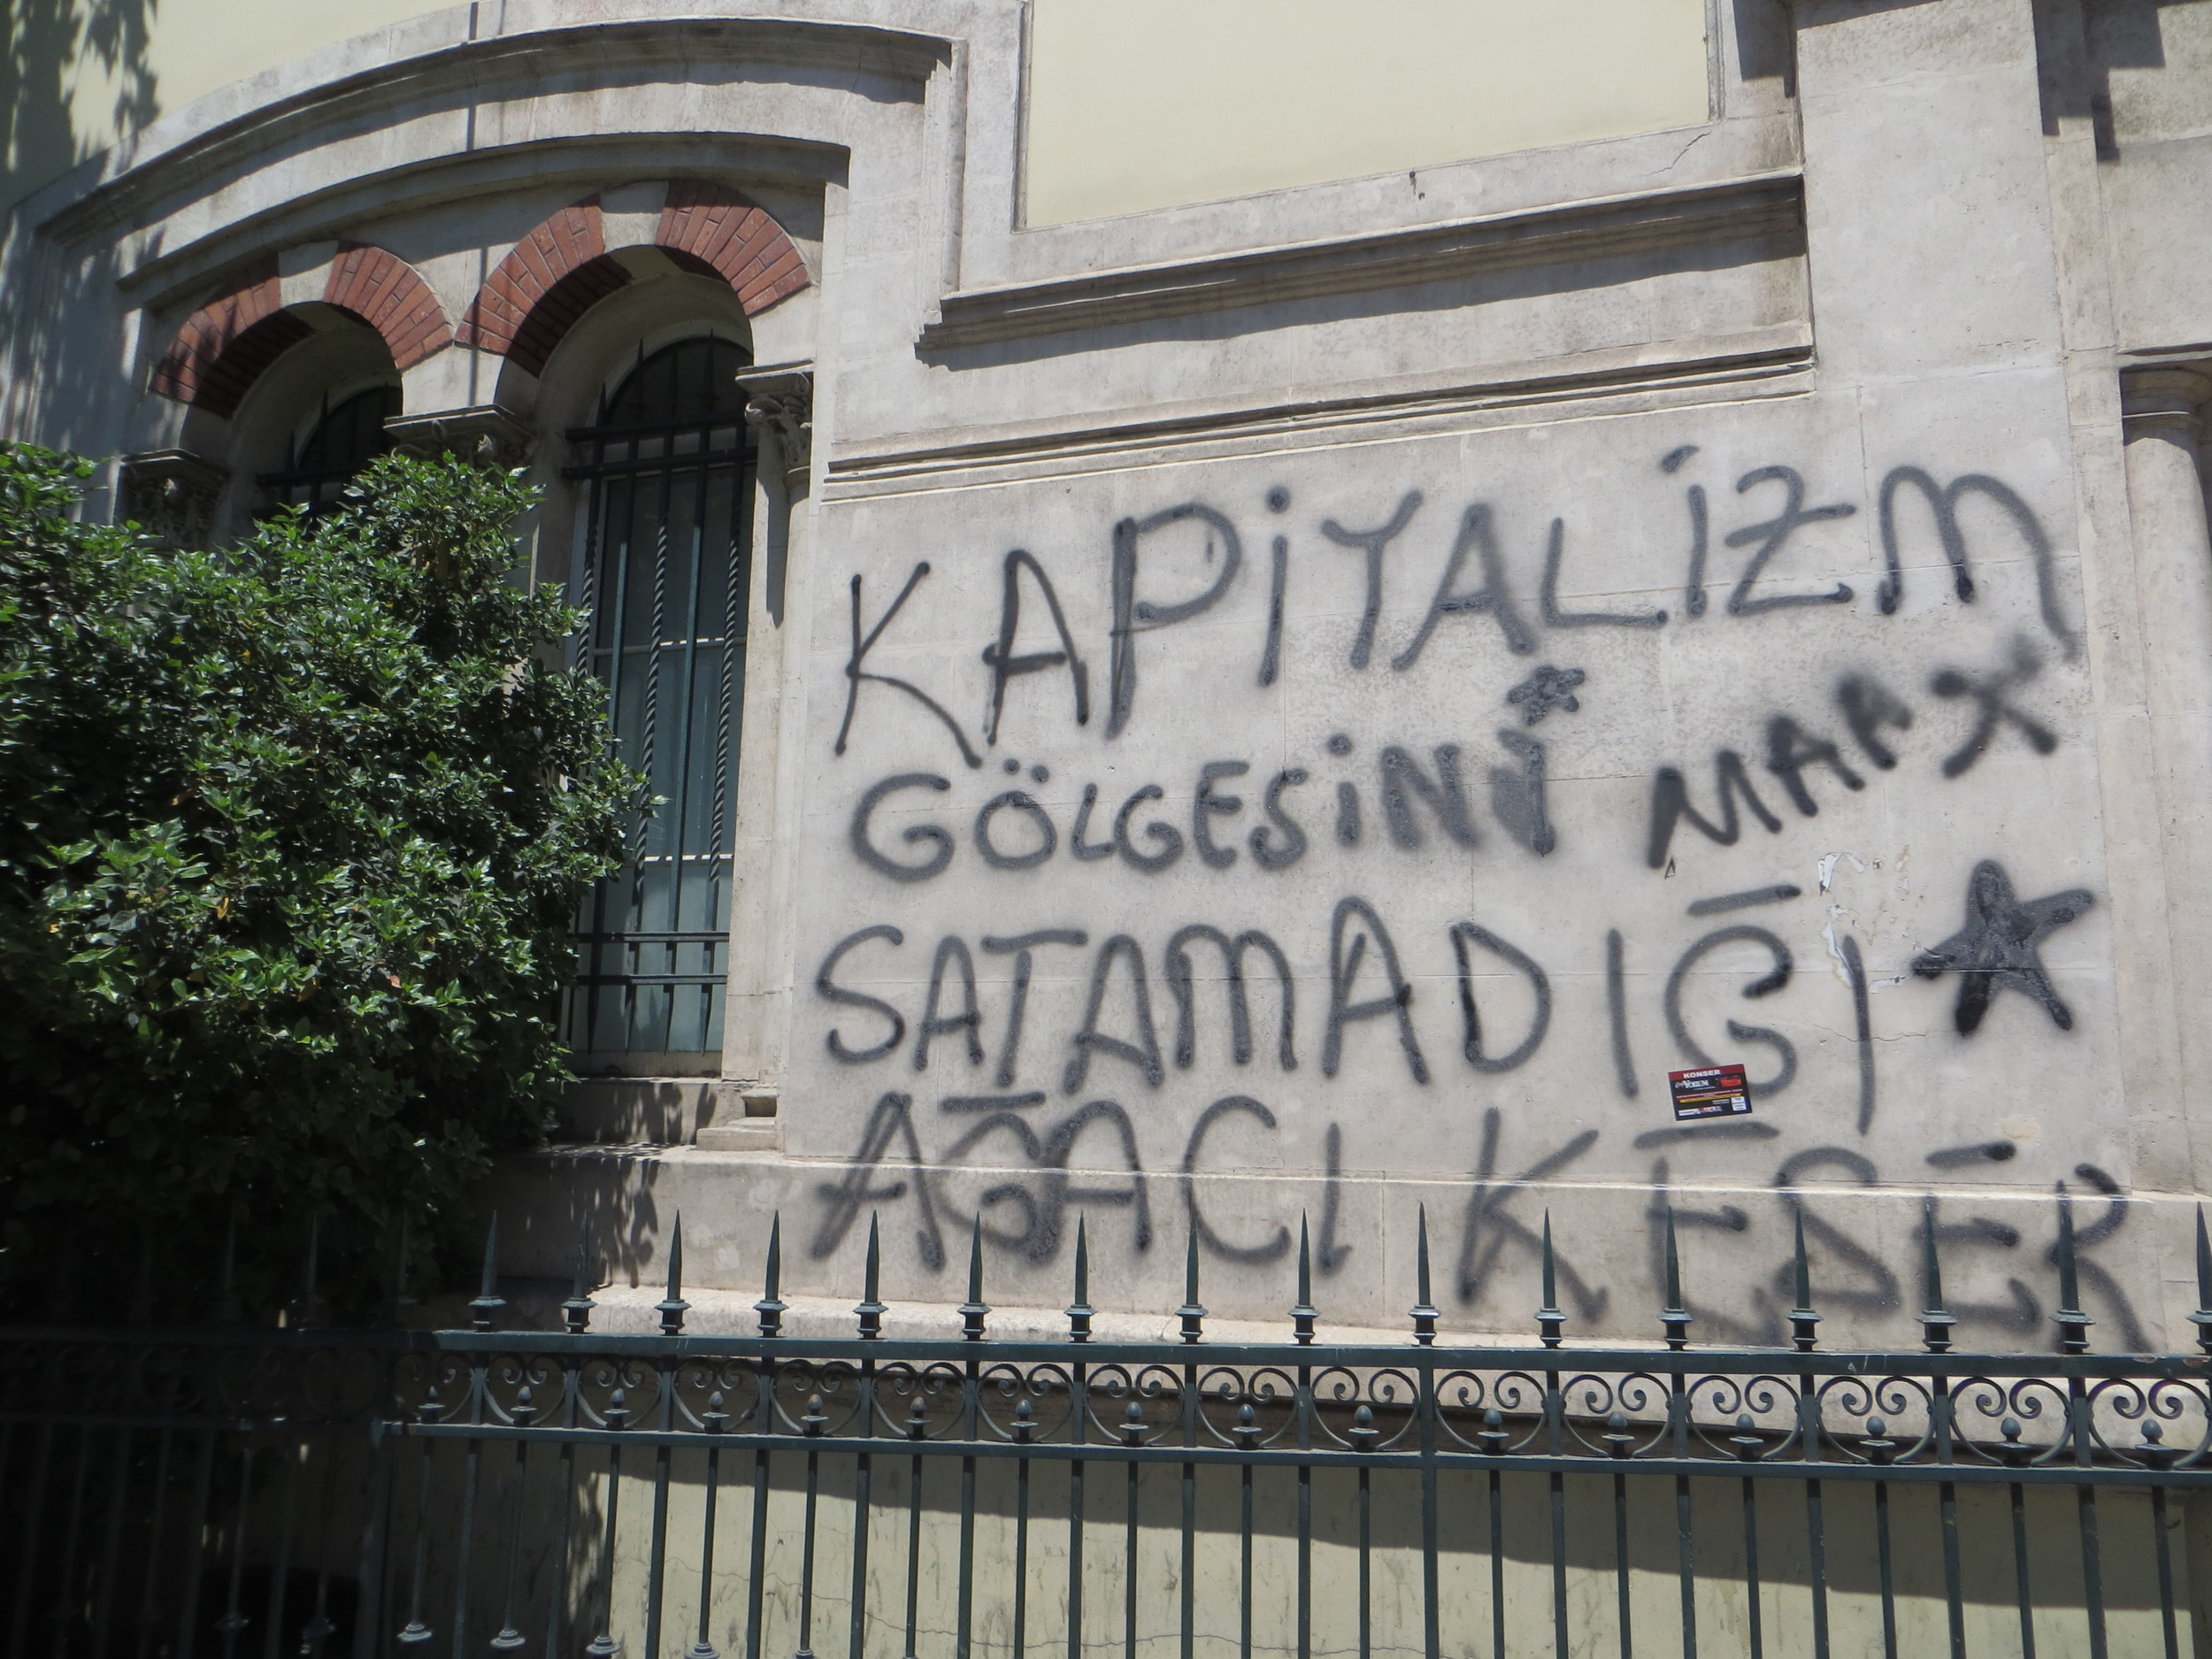 """Tree shadows do not stop capitalism"" spray painted on the French Consulate, adjacent to Taksim Square."